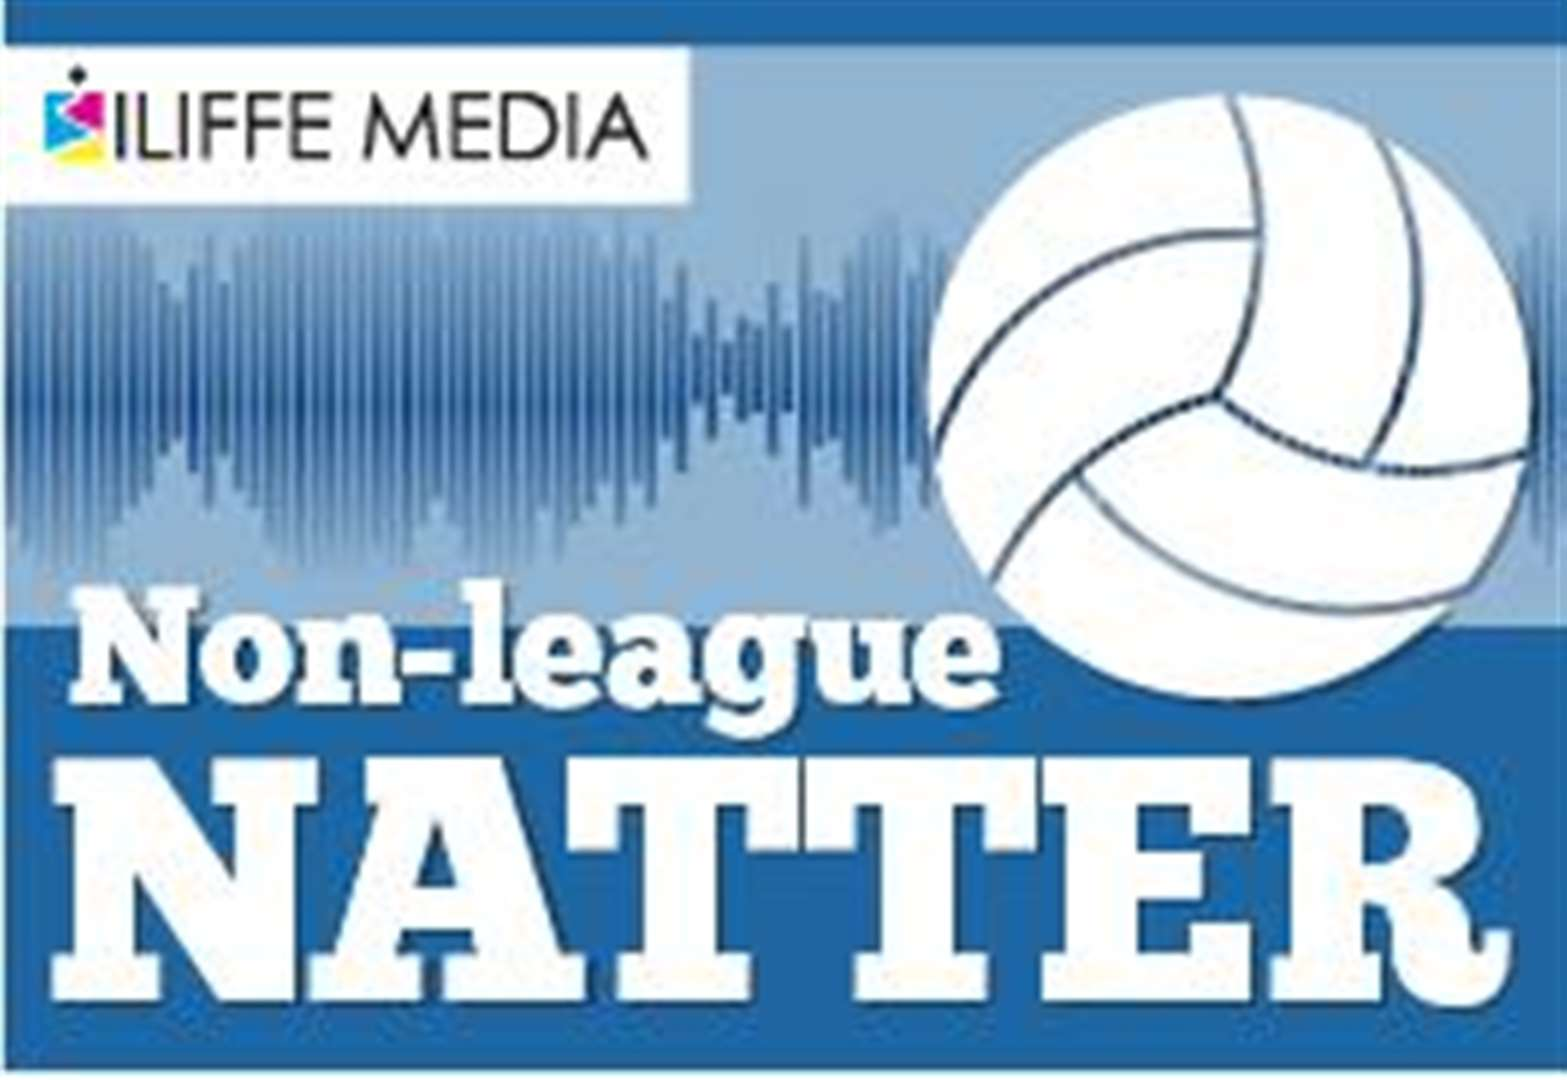 Non-League Natter Podcast: Ep10